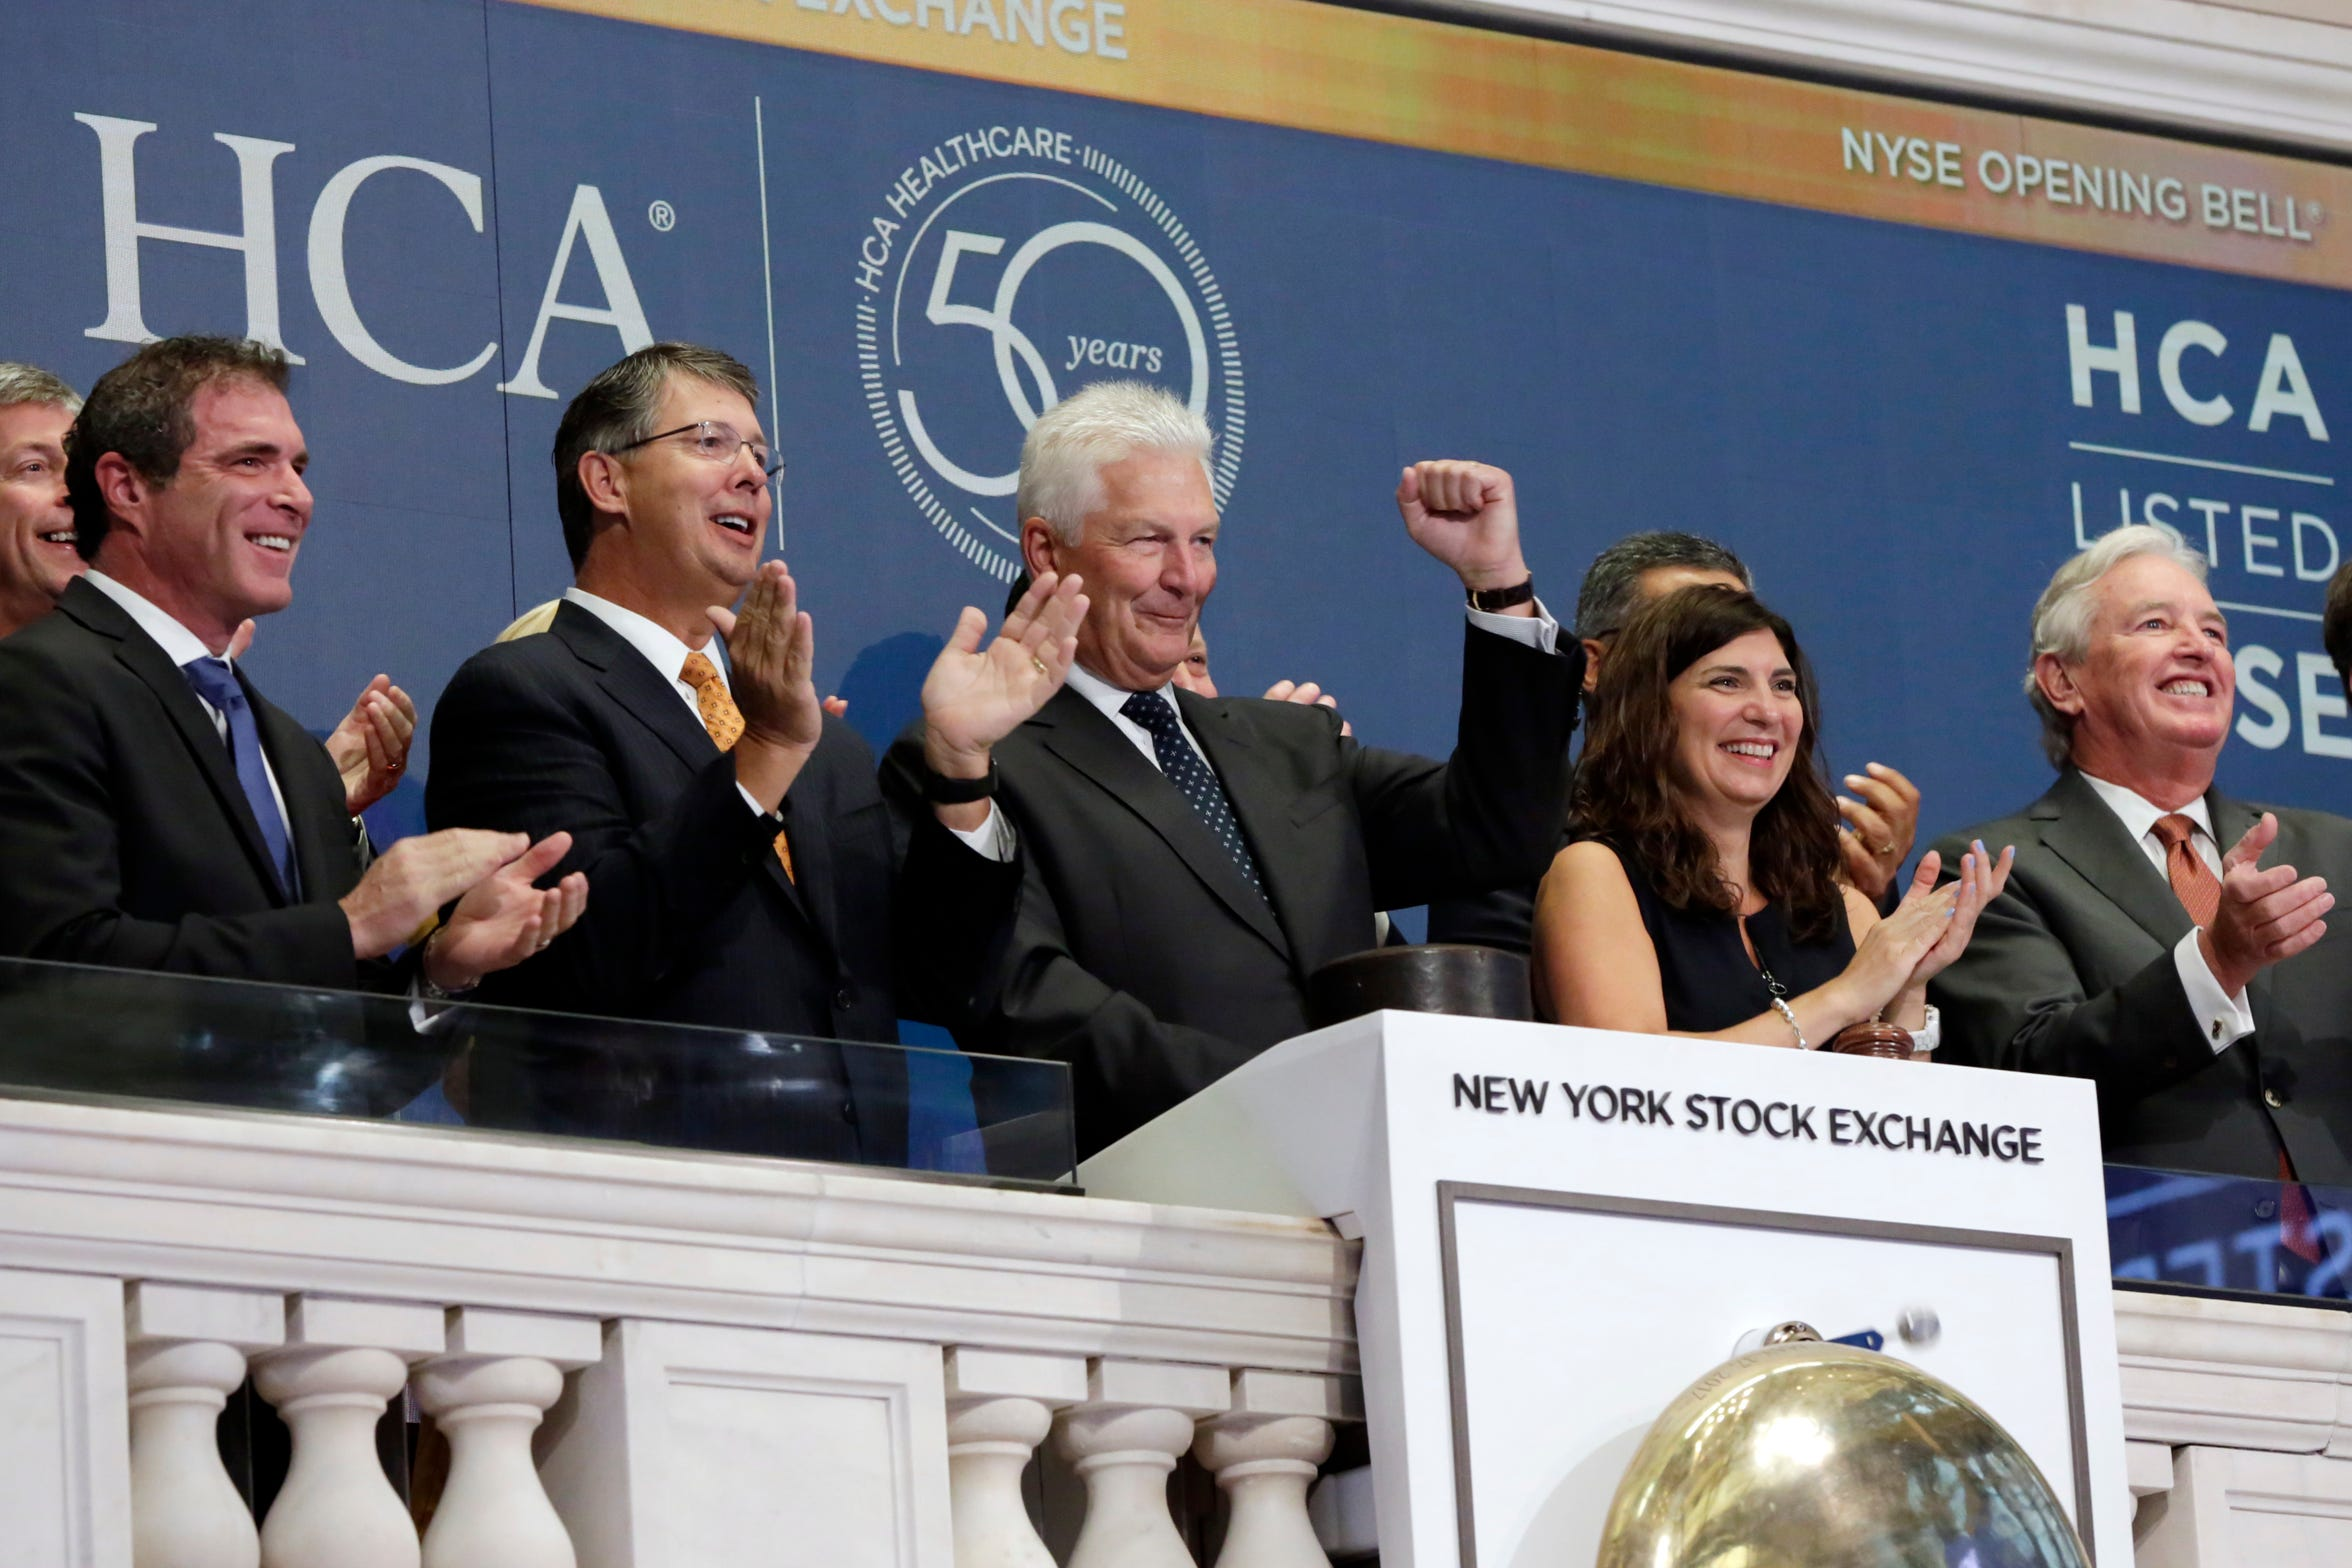 HCA Chairman and CEO Milton Johnson, center, company executives and NYSE President Stacey Cunningham applaud as Johnson rings the New York Stock Exchange opening bell Tuesday, Aug. 14, 2018, to celebrate 50 years since the company's founding.